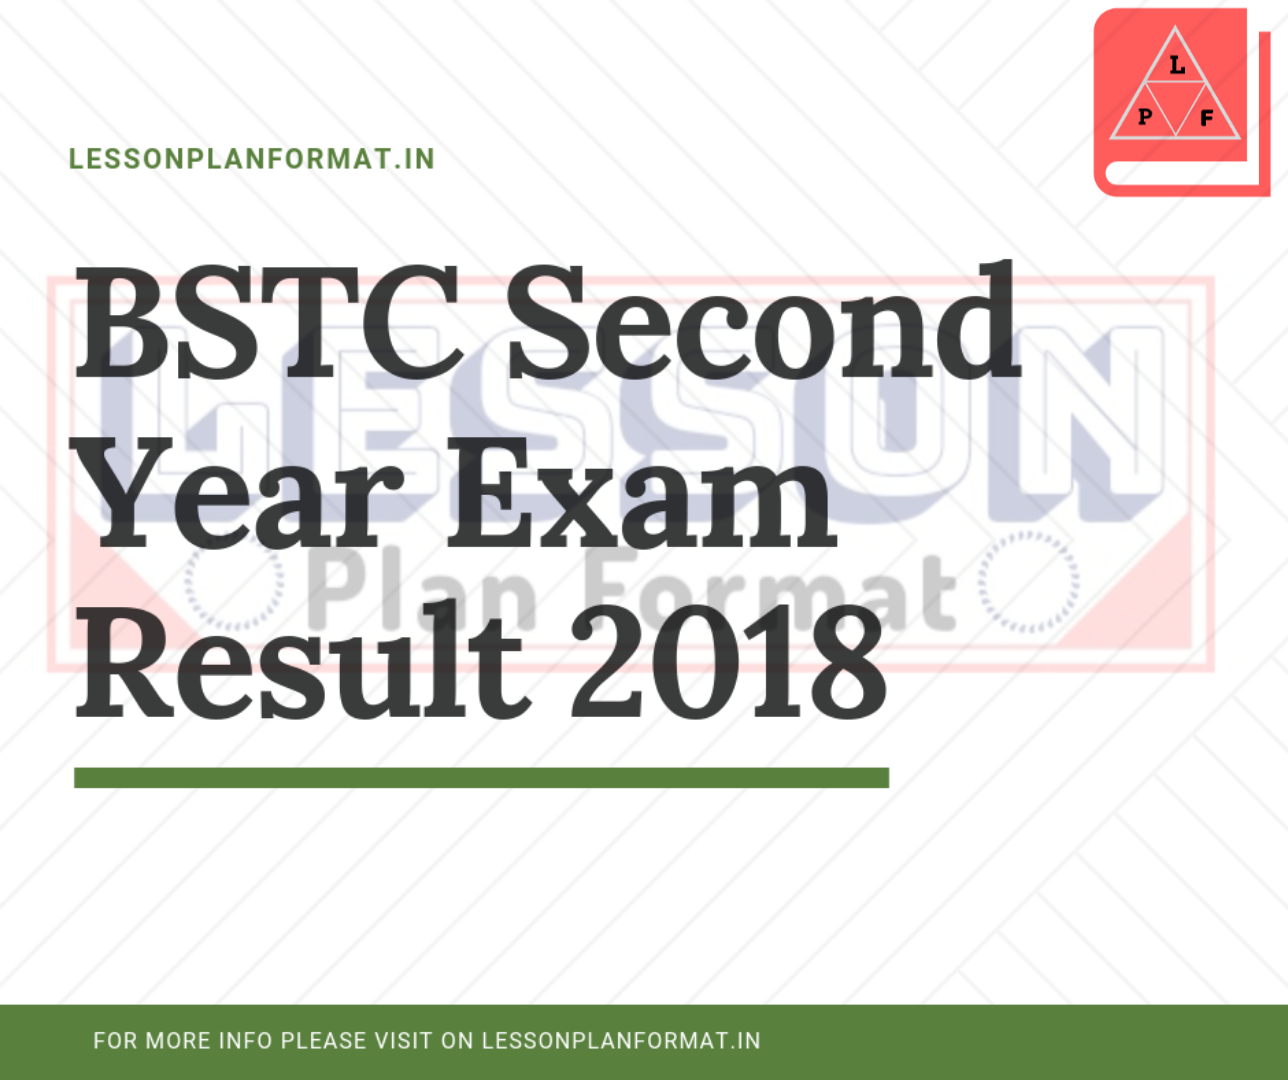 BSTC Second Year Exam Result 2018